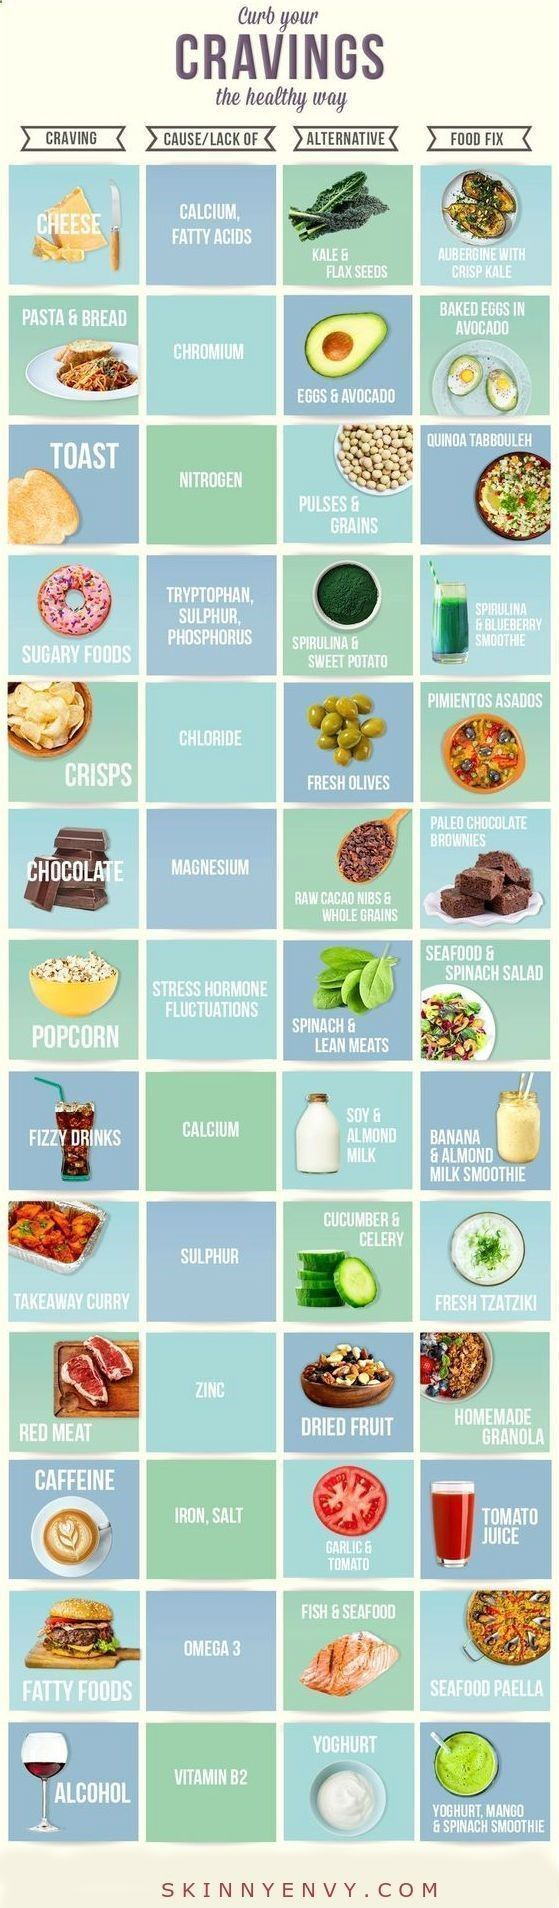 Curb Your Cravings the Healthy Way Try these healthy & natural appetite suppressants to help you achieve your weight loss goals #weightloss #Food #Health: